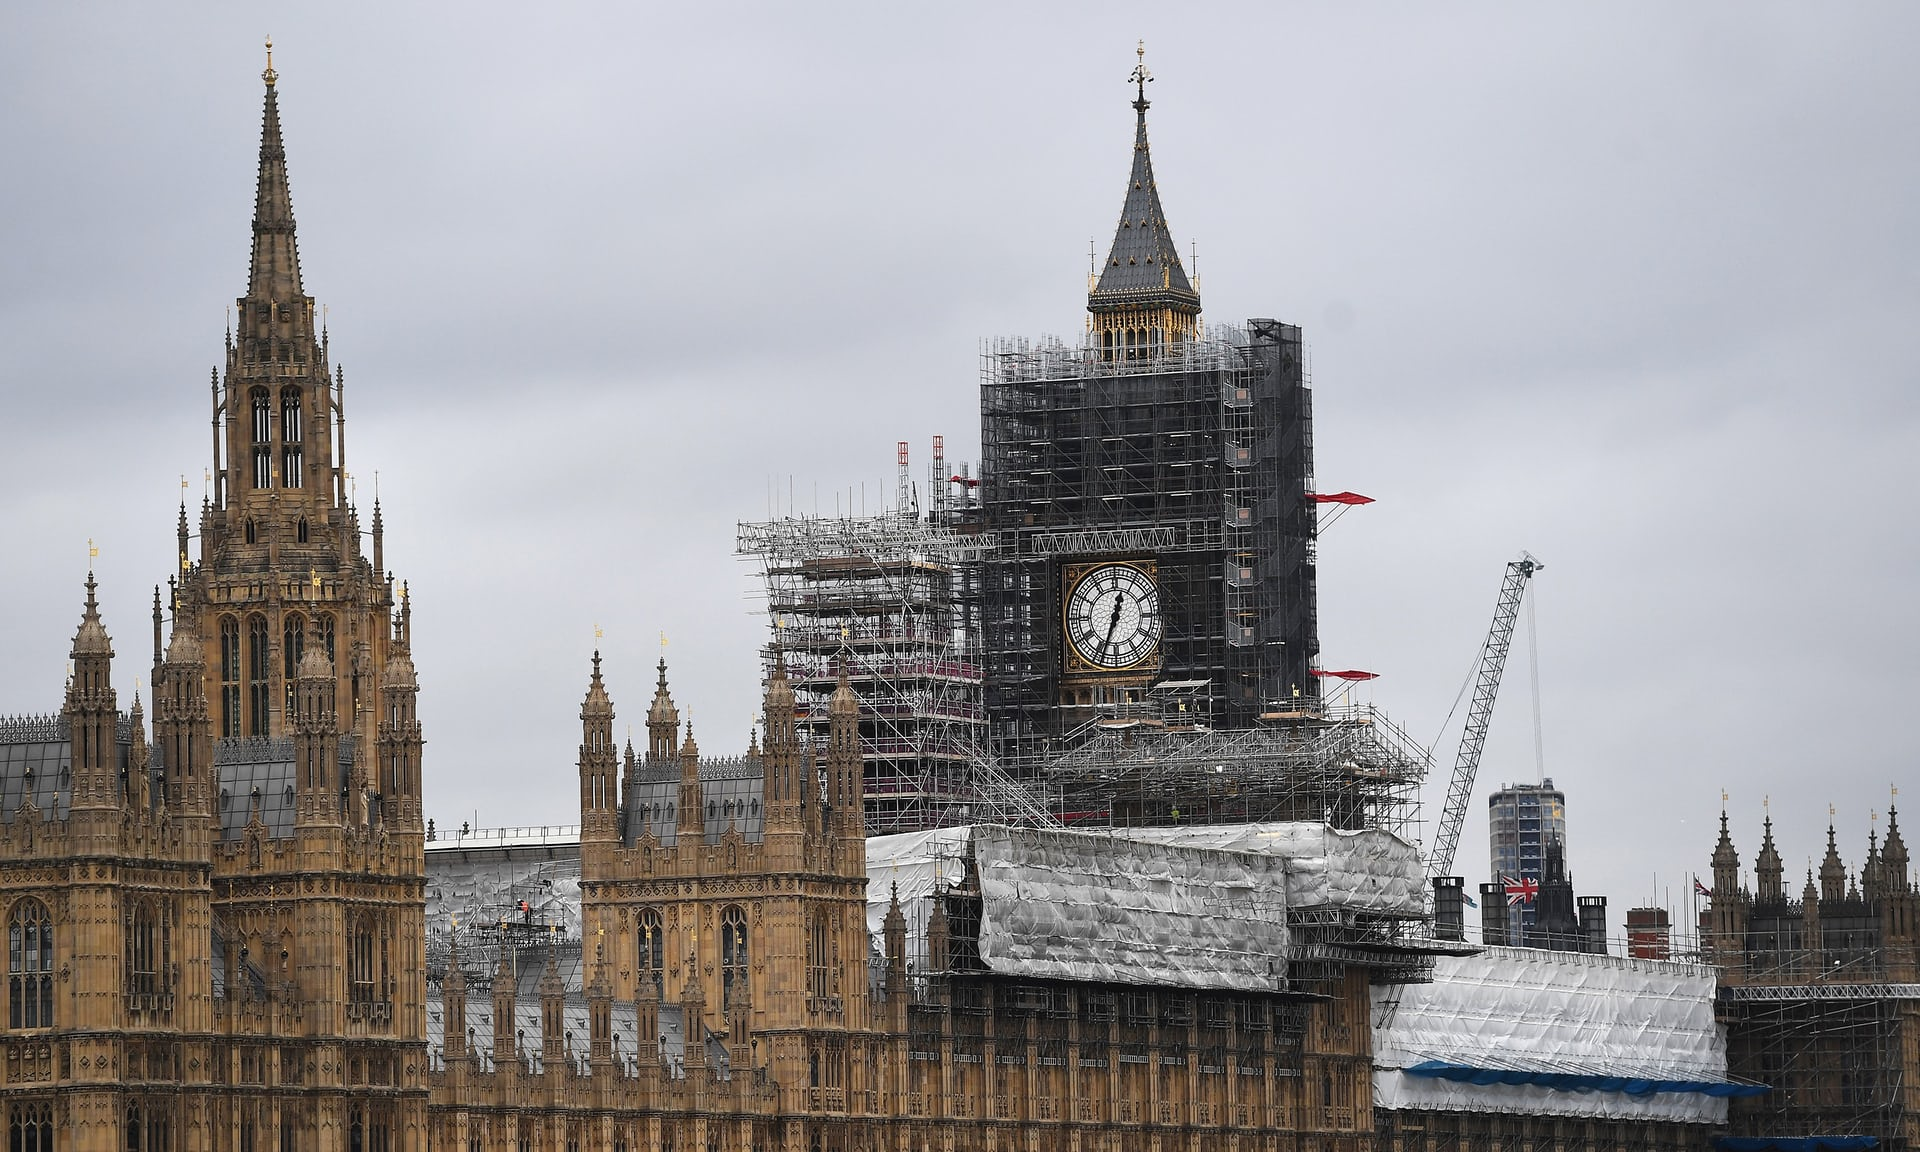 westminster_refurbishment.jpg